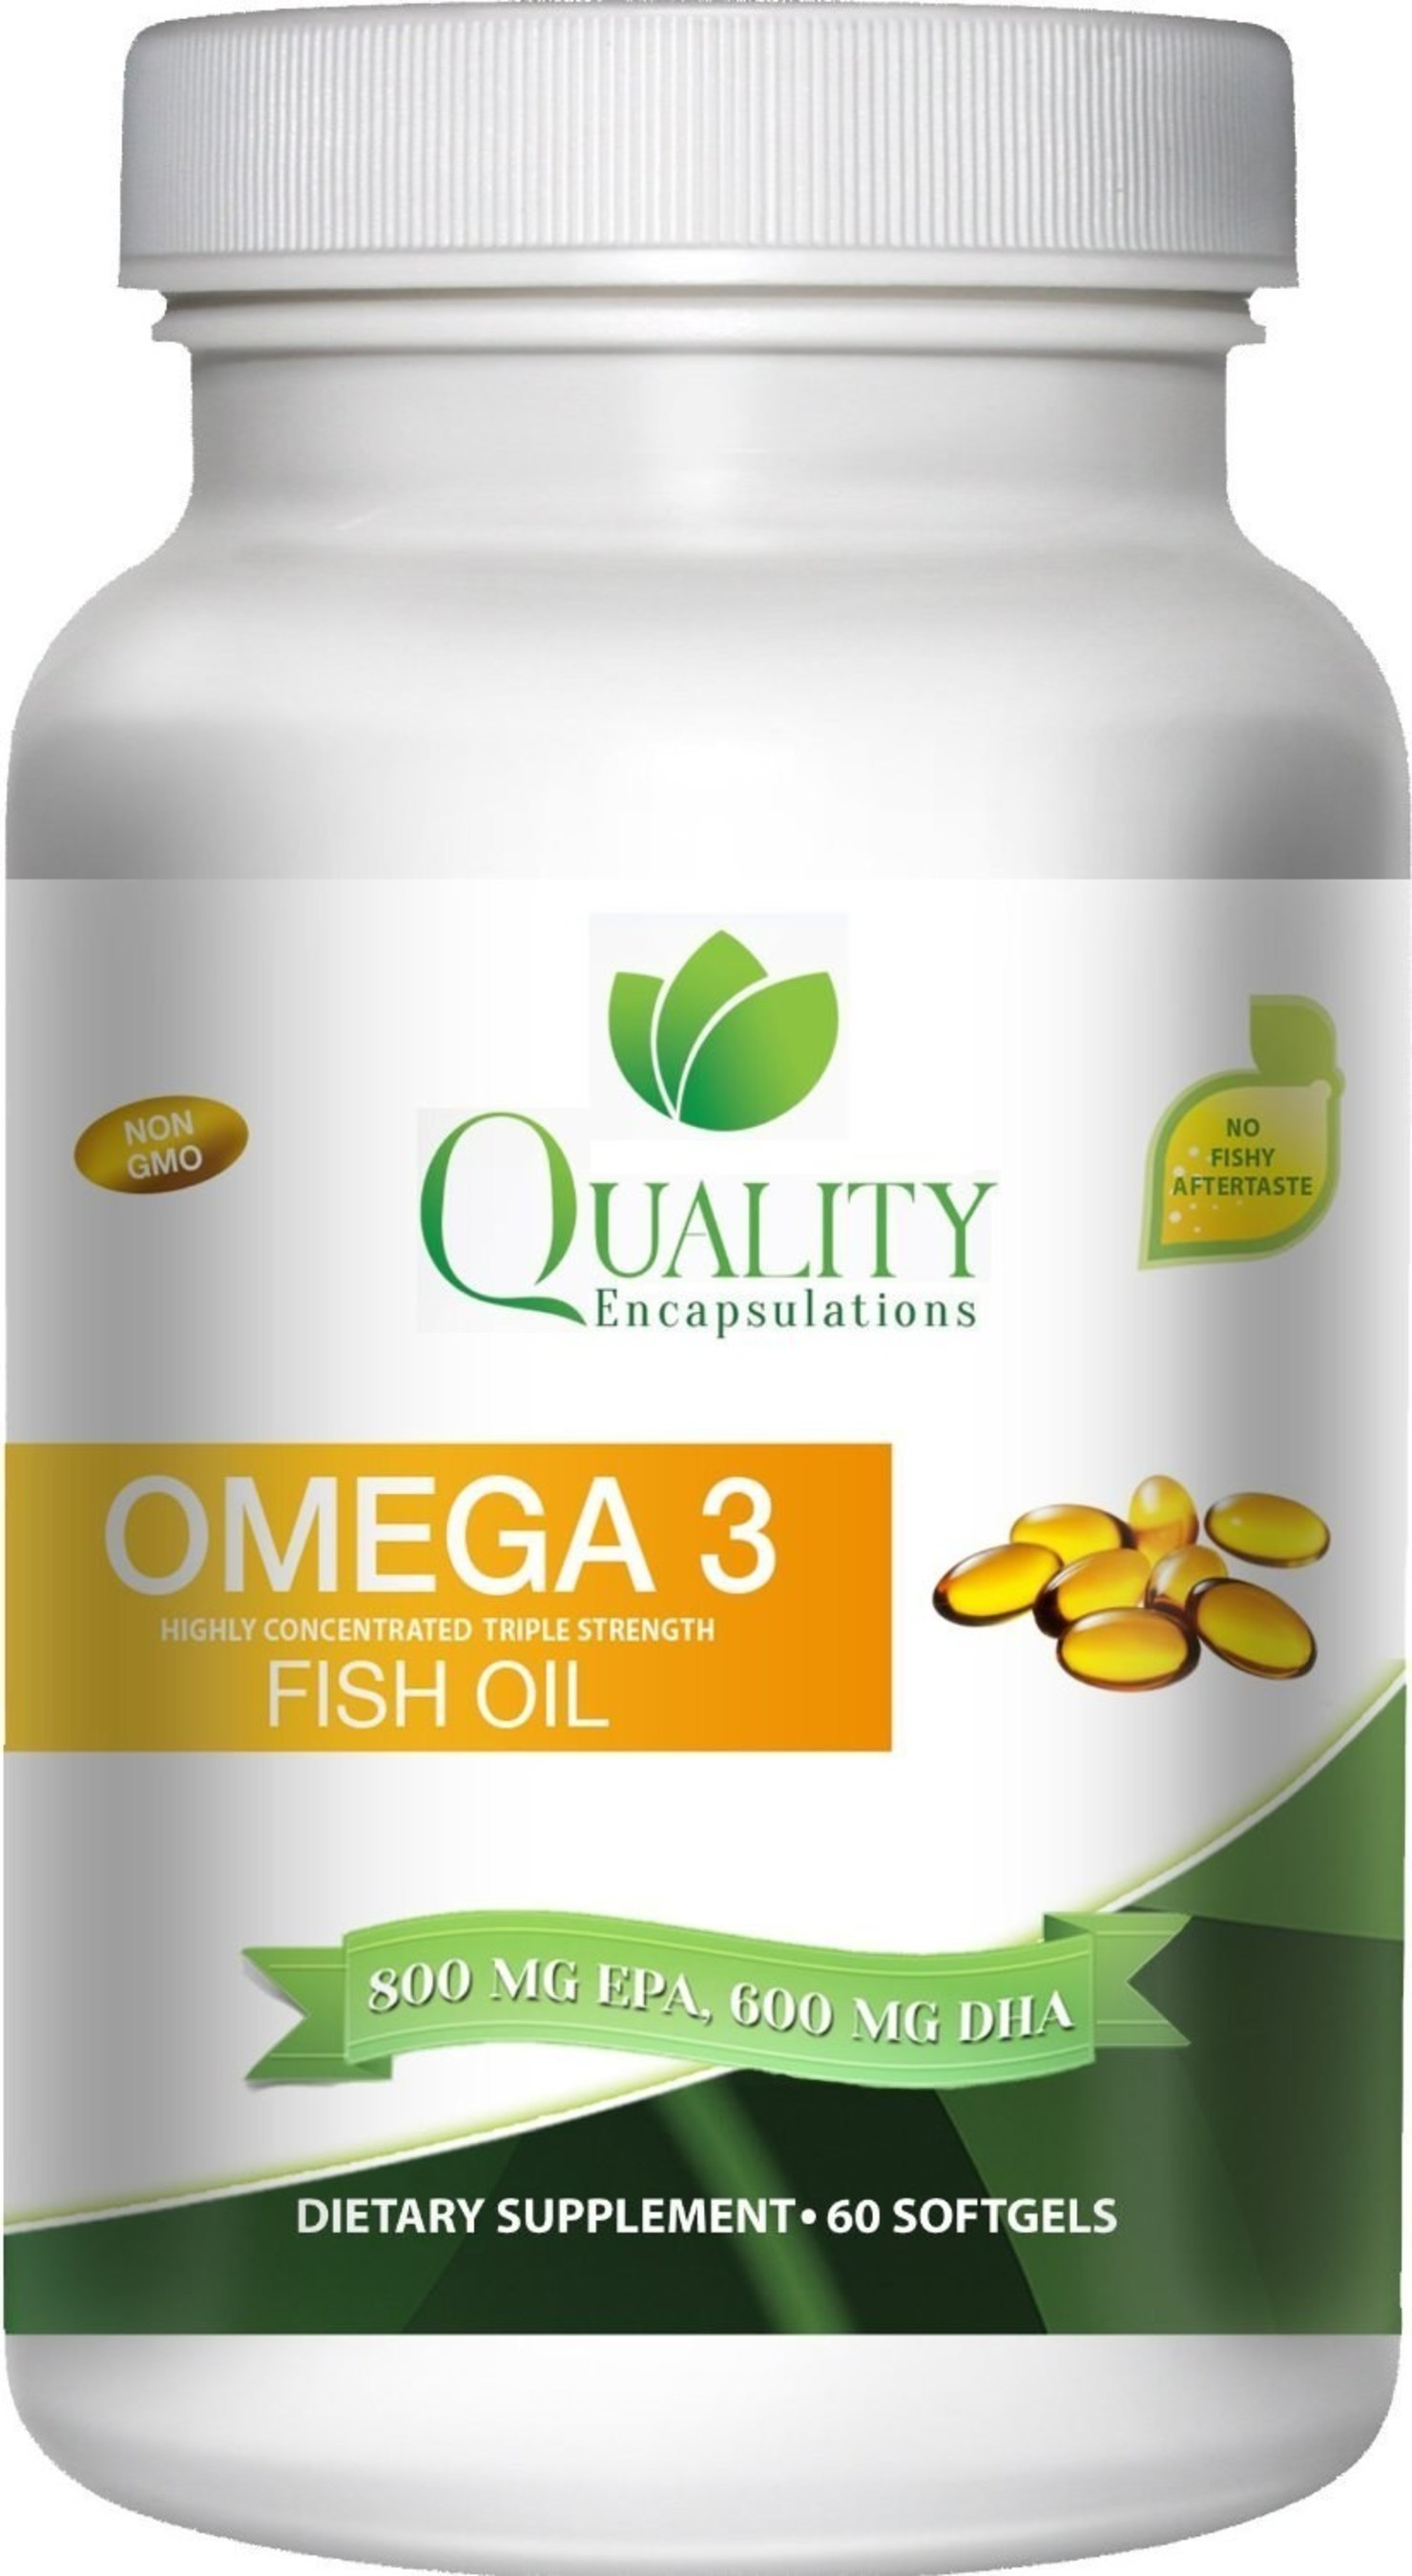 Quality encapsulations announces high quality for Where does fish oil come from